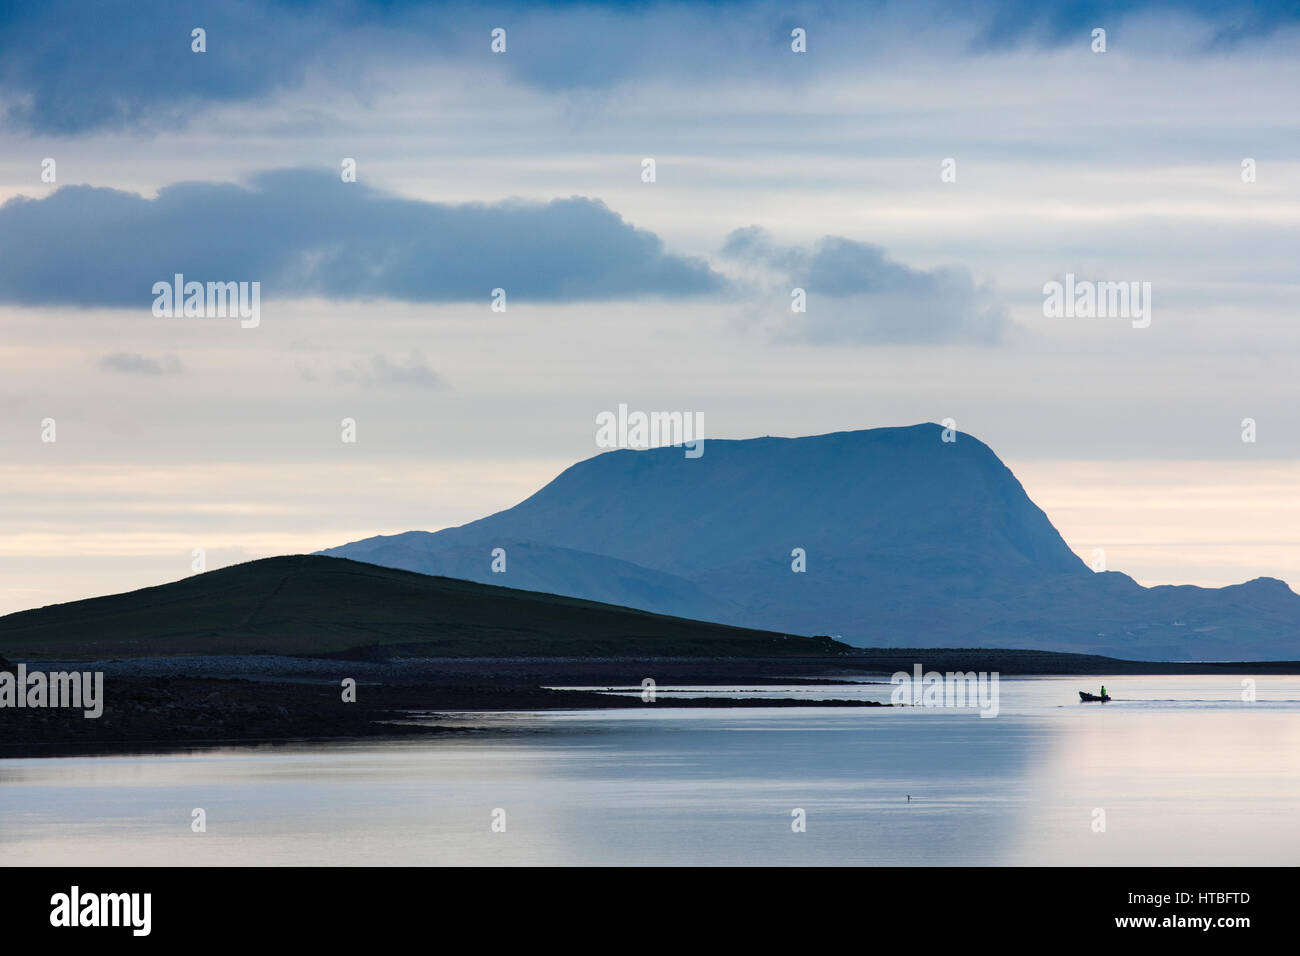 A solitary boat off Clare Island, Clew Bay, Co Mayo, Ireland - Stock Image